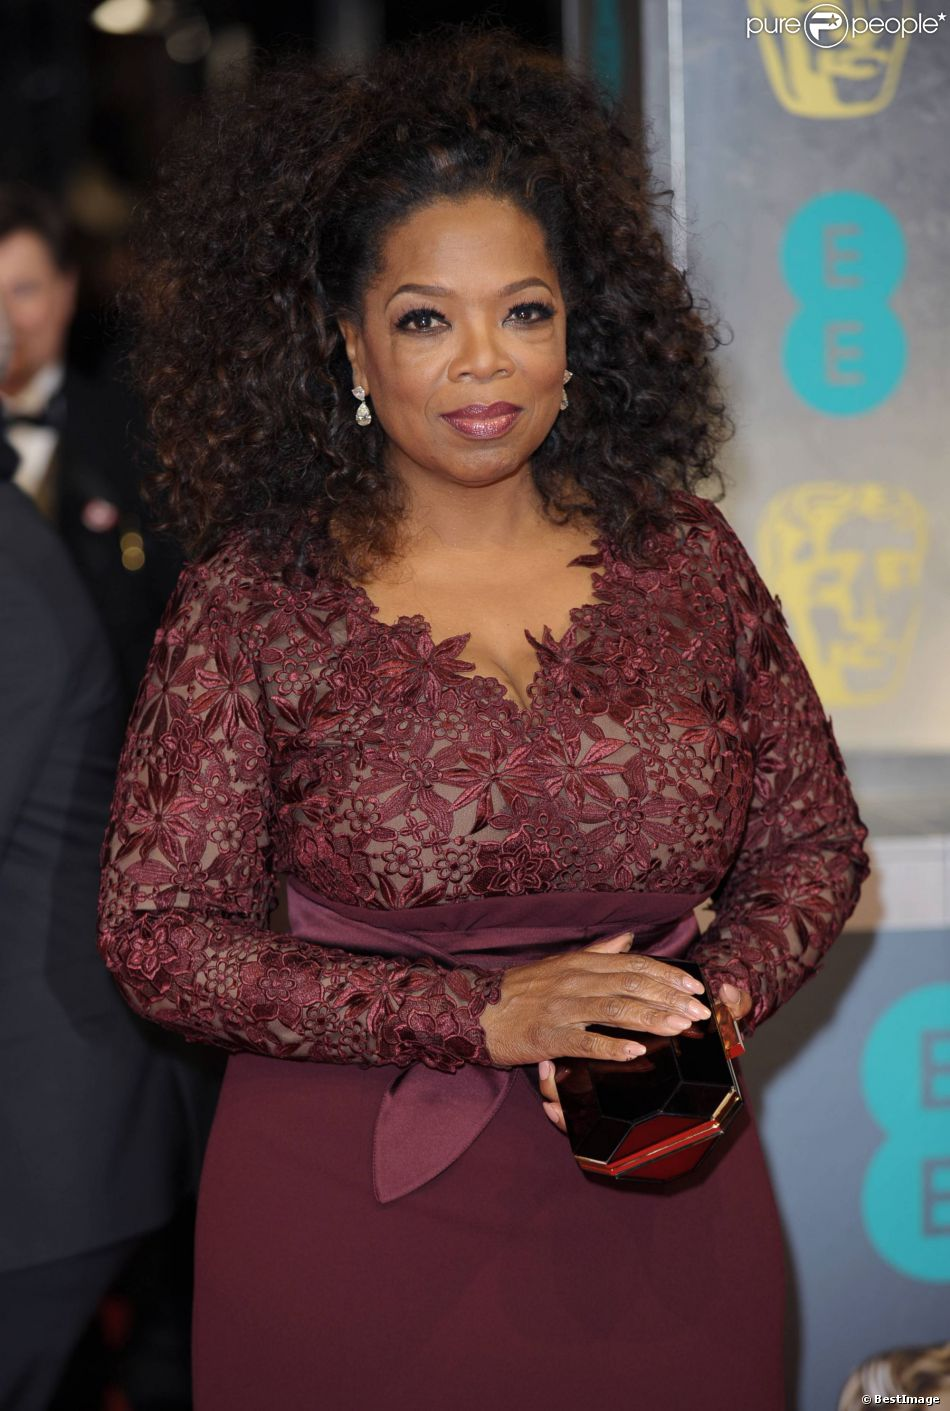 L'animatrice Oprah Winfrey à l'After party des Bafta Awards à Londres, le 16 février 2014.